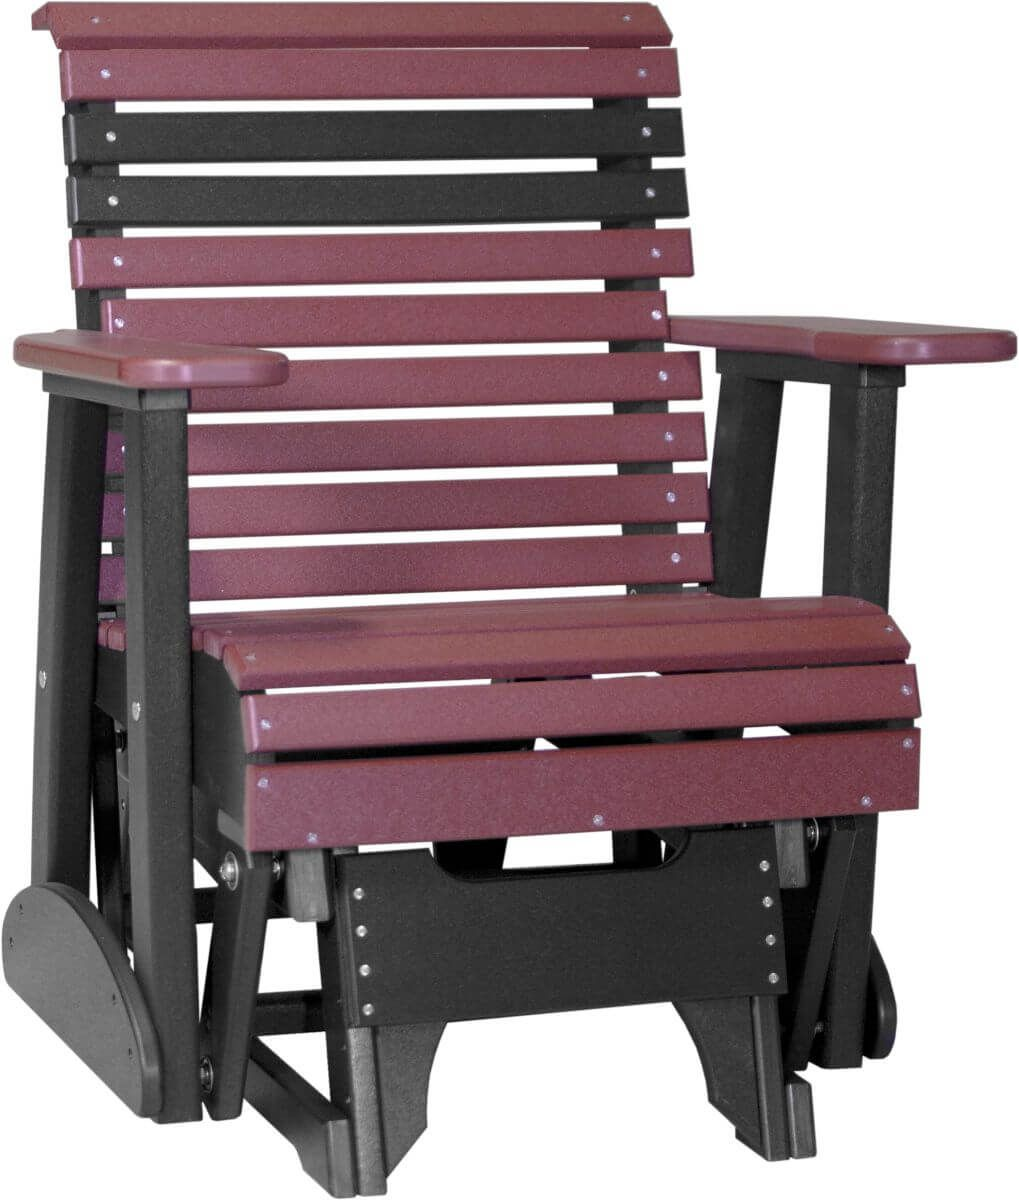 Cherrywood and Black Cape Lookout Patio Glider